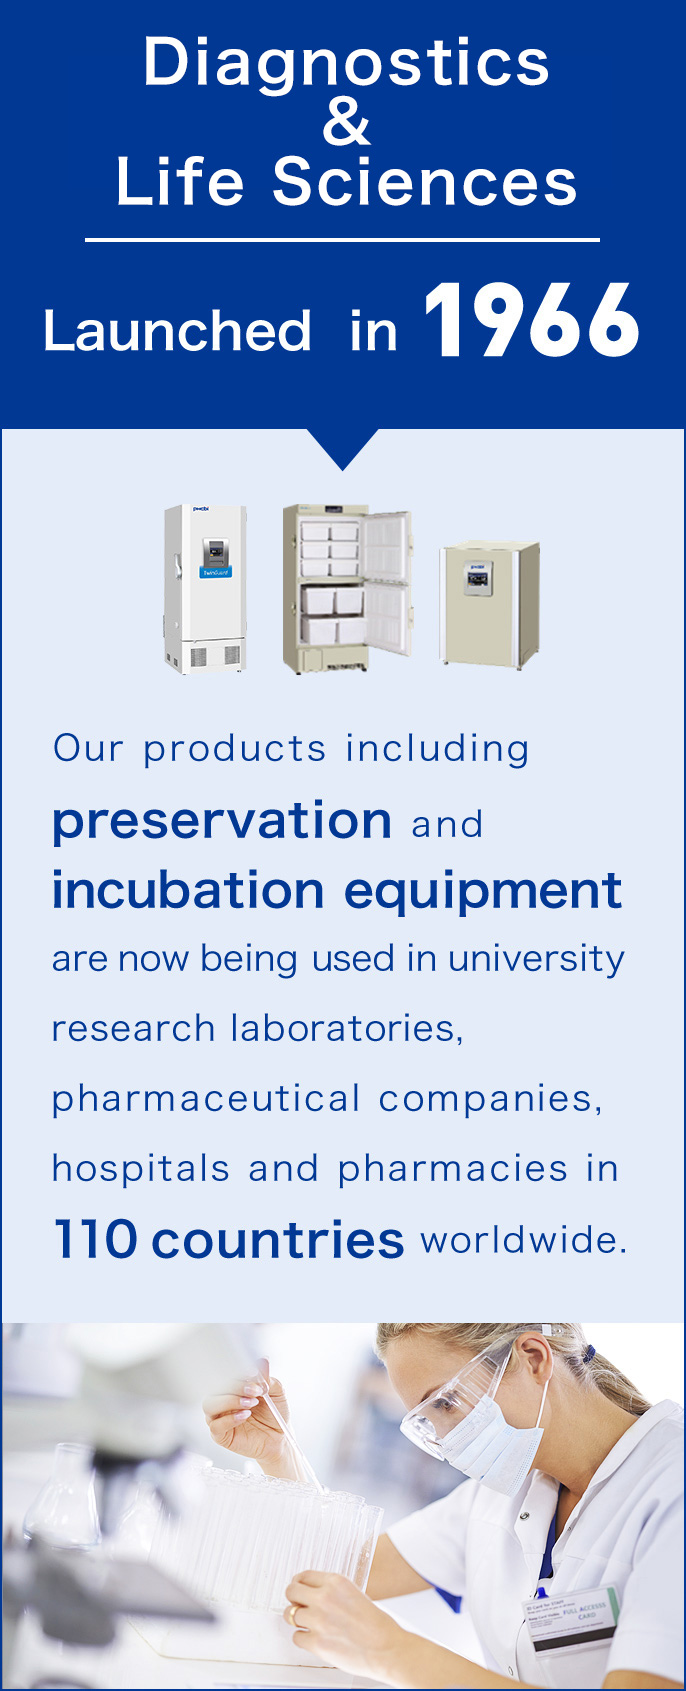 Life Sciences, Launched  in 1966. Our products including preservation and incubation equipment are now being used in university research laboratories, pharmaceutical companies, hospitals and pharmacies in 110 countries worldwide.